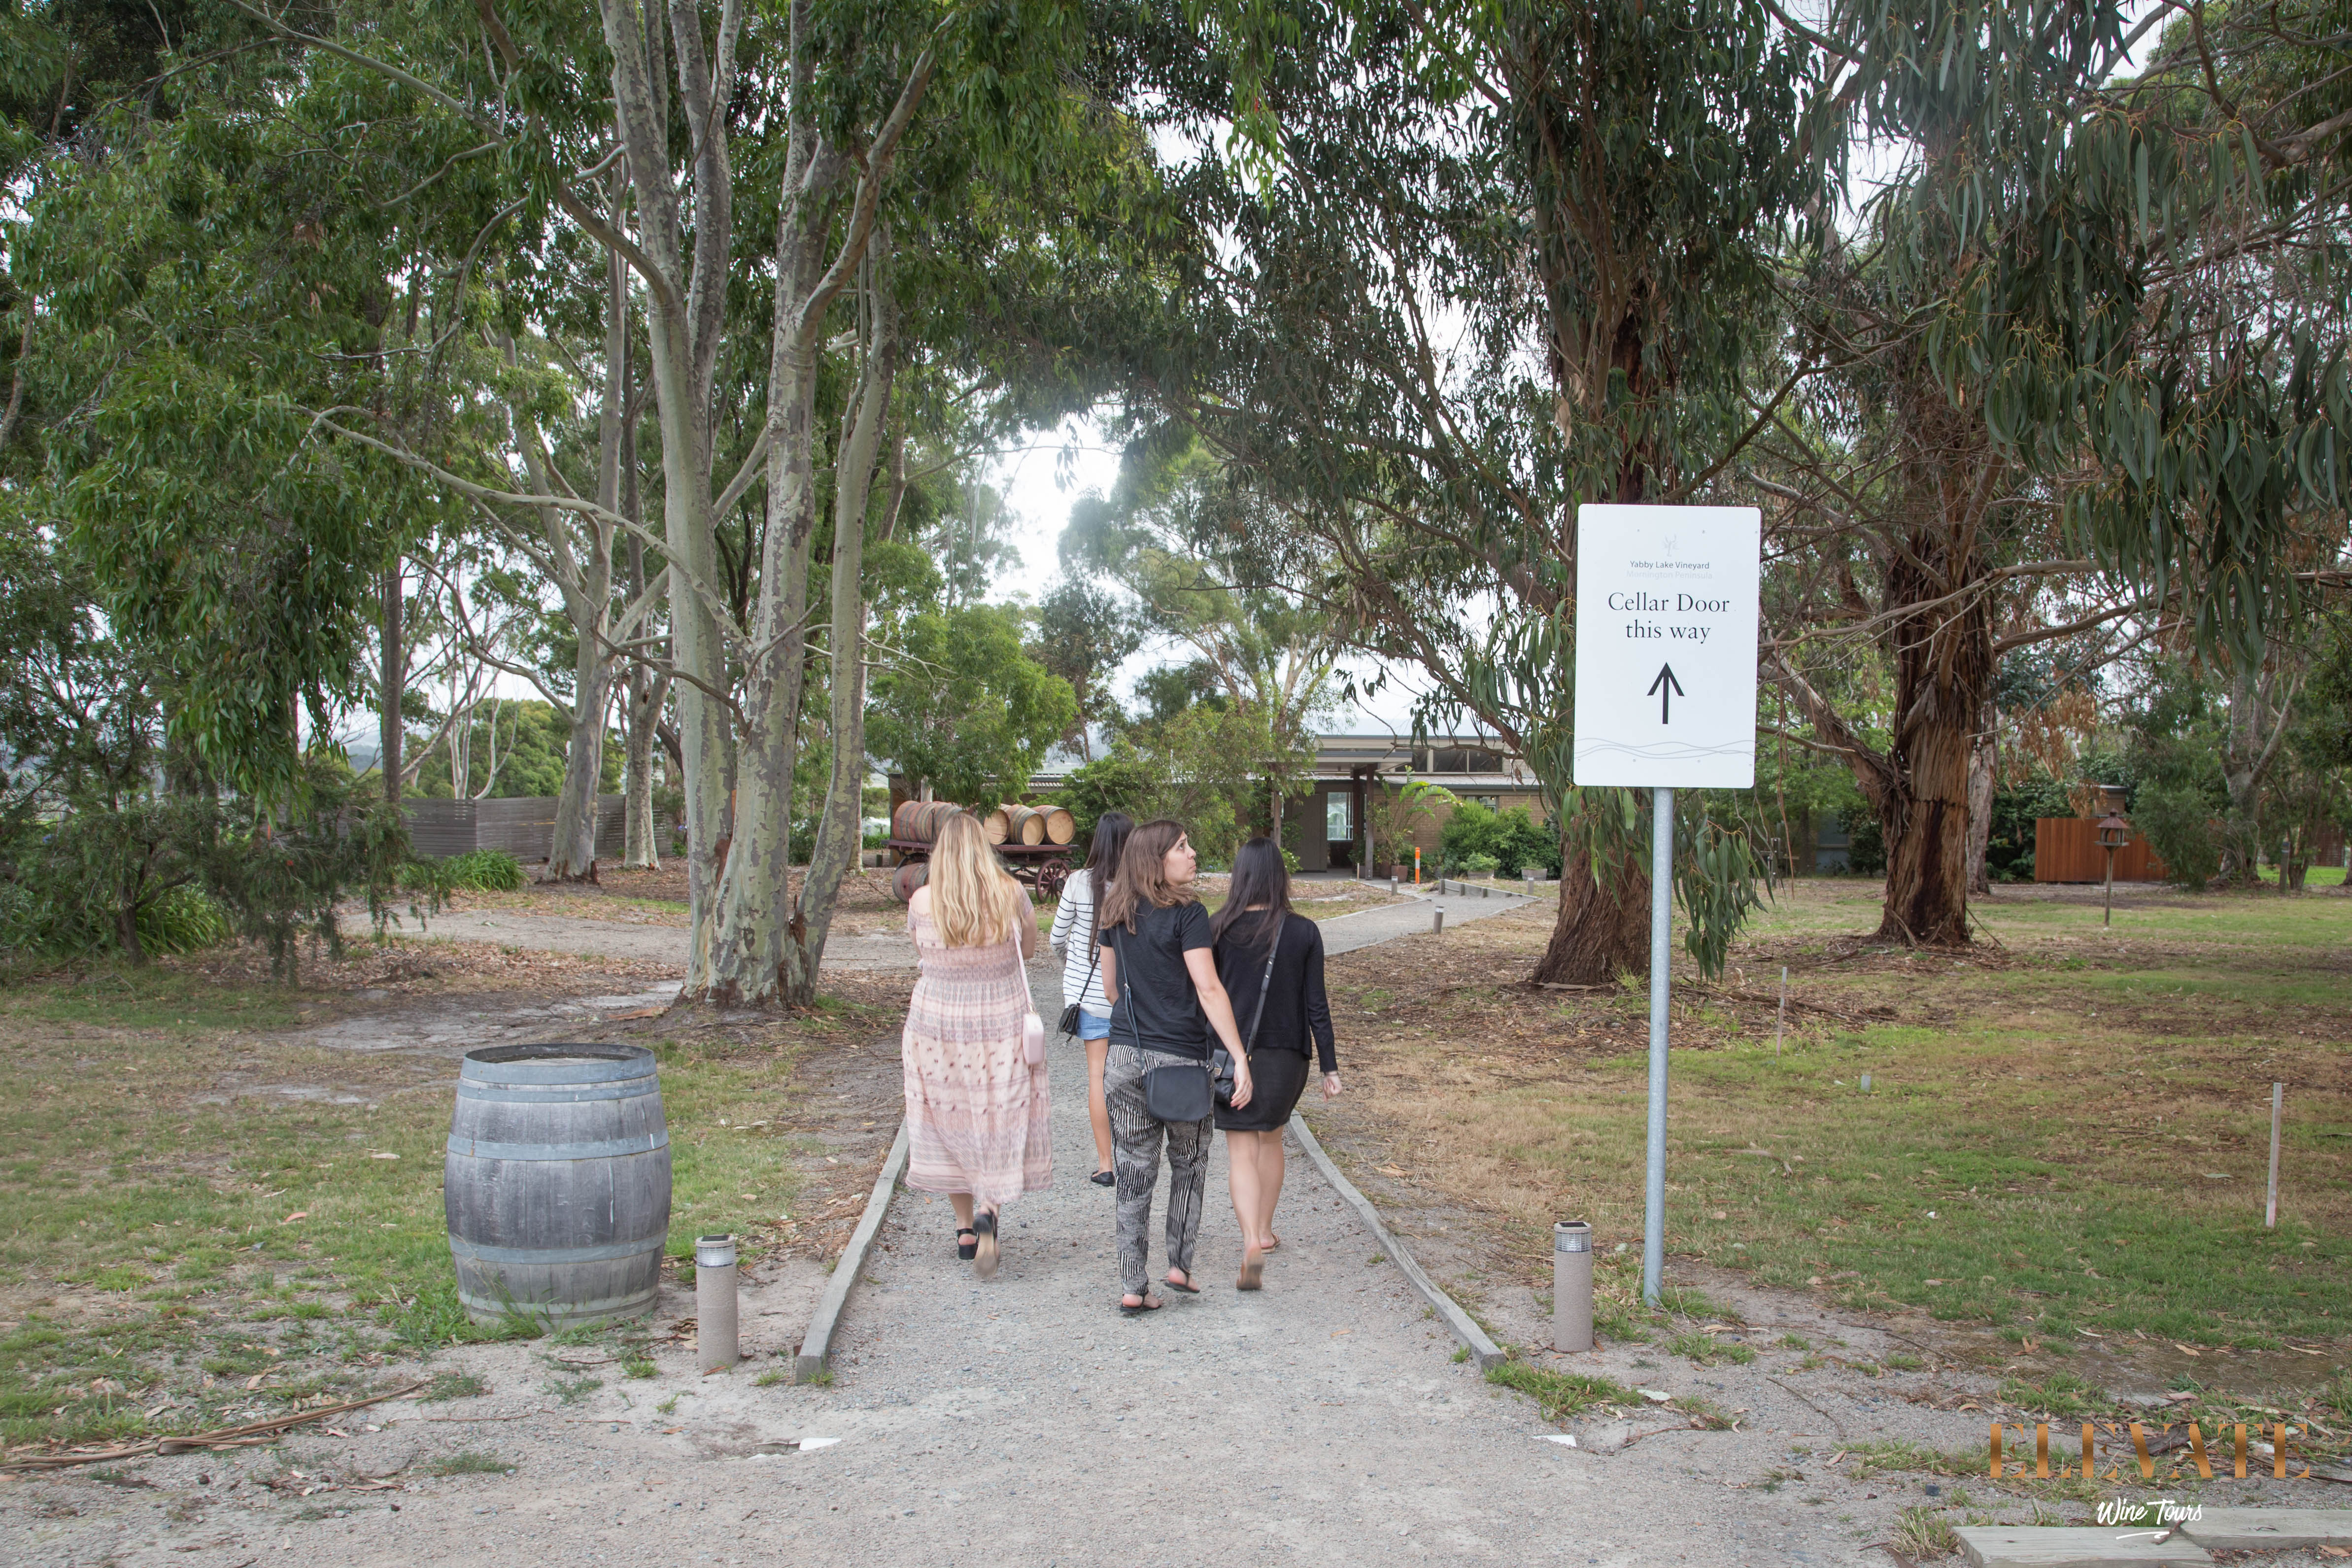 First stop of the wine tour at Yabby Lake Vineyard